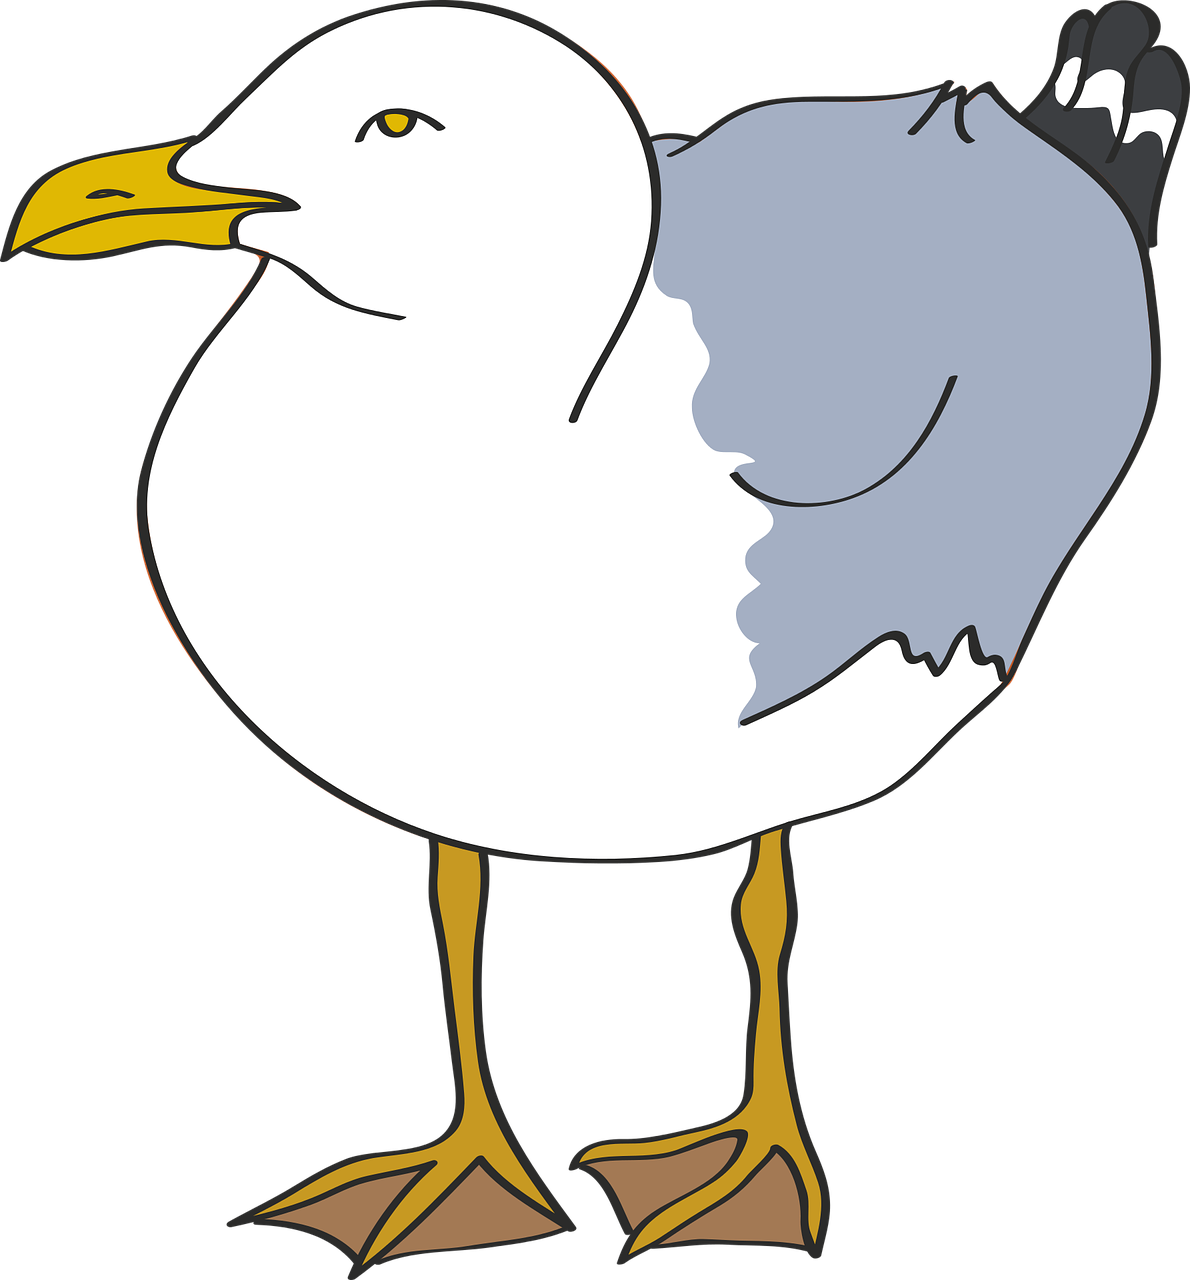 Clipart Image of a seagull